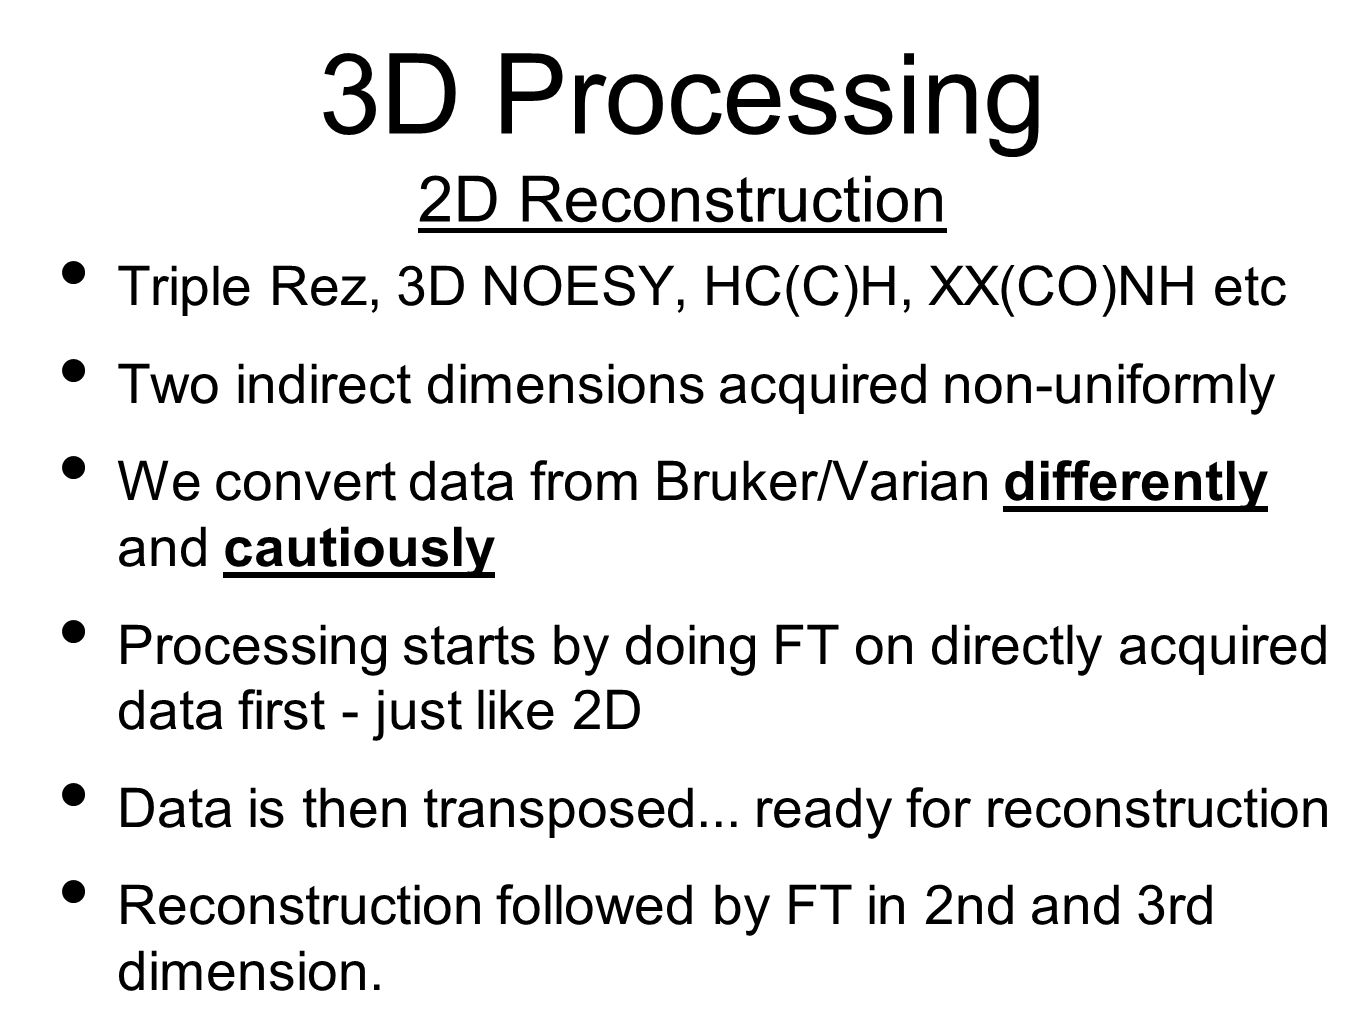 3D Processing 2D Reconstruction